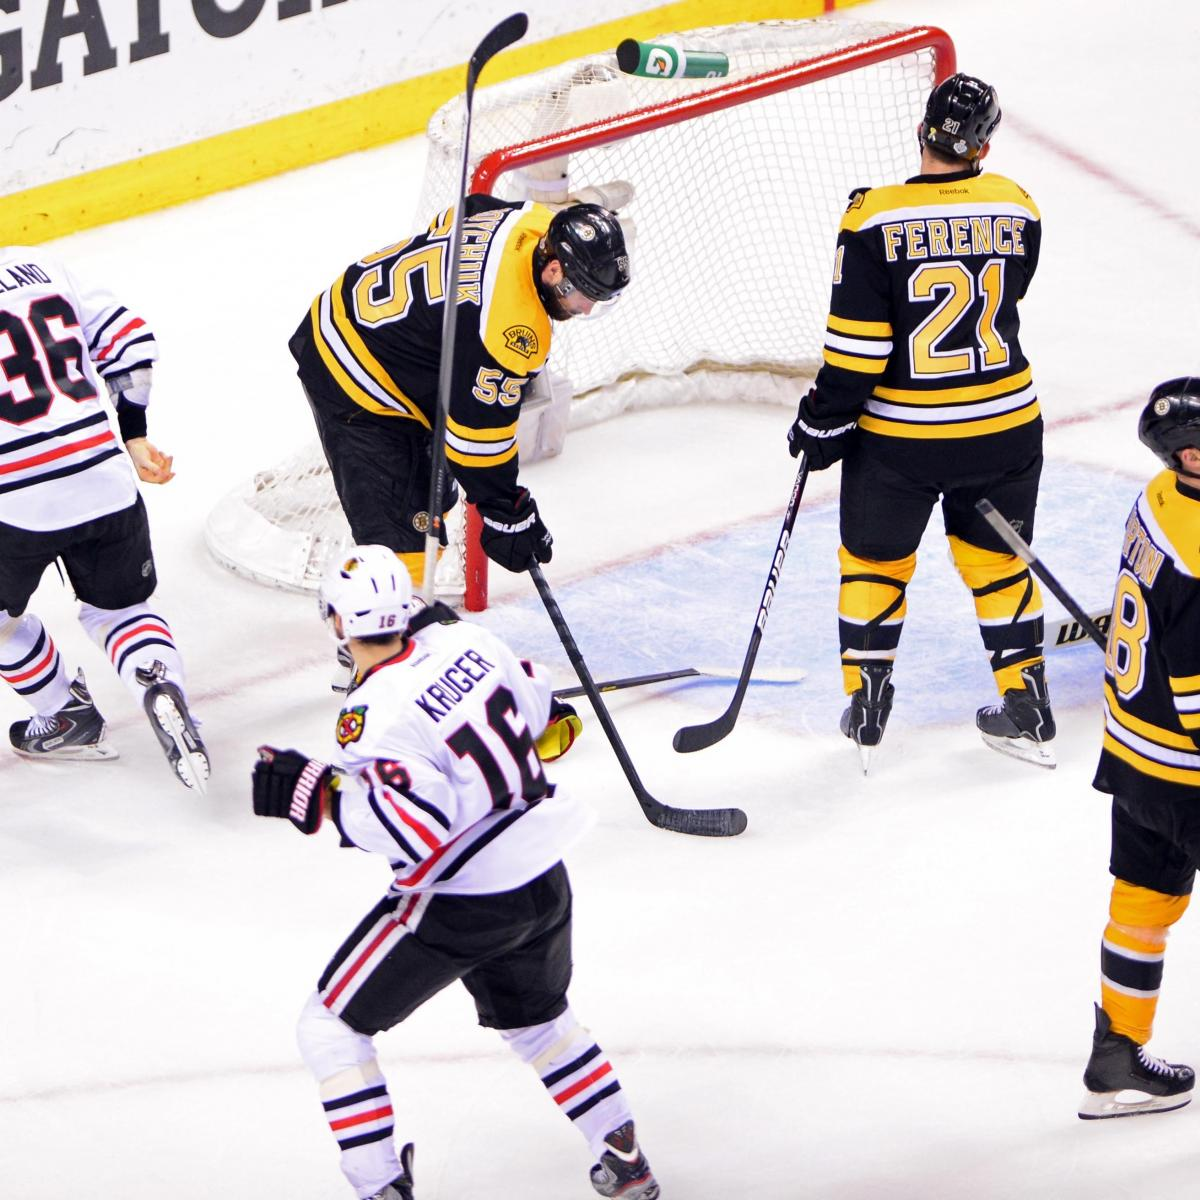 Ranking the 5 Most Heartbreaking Losses in Boston Bruins ...Bruins Bleacher Report